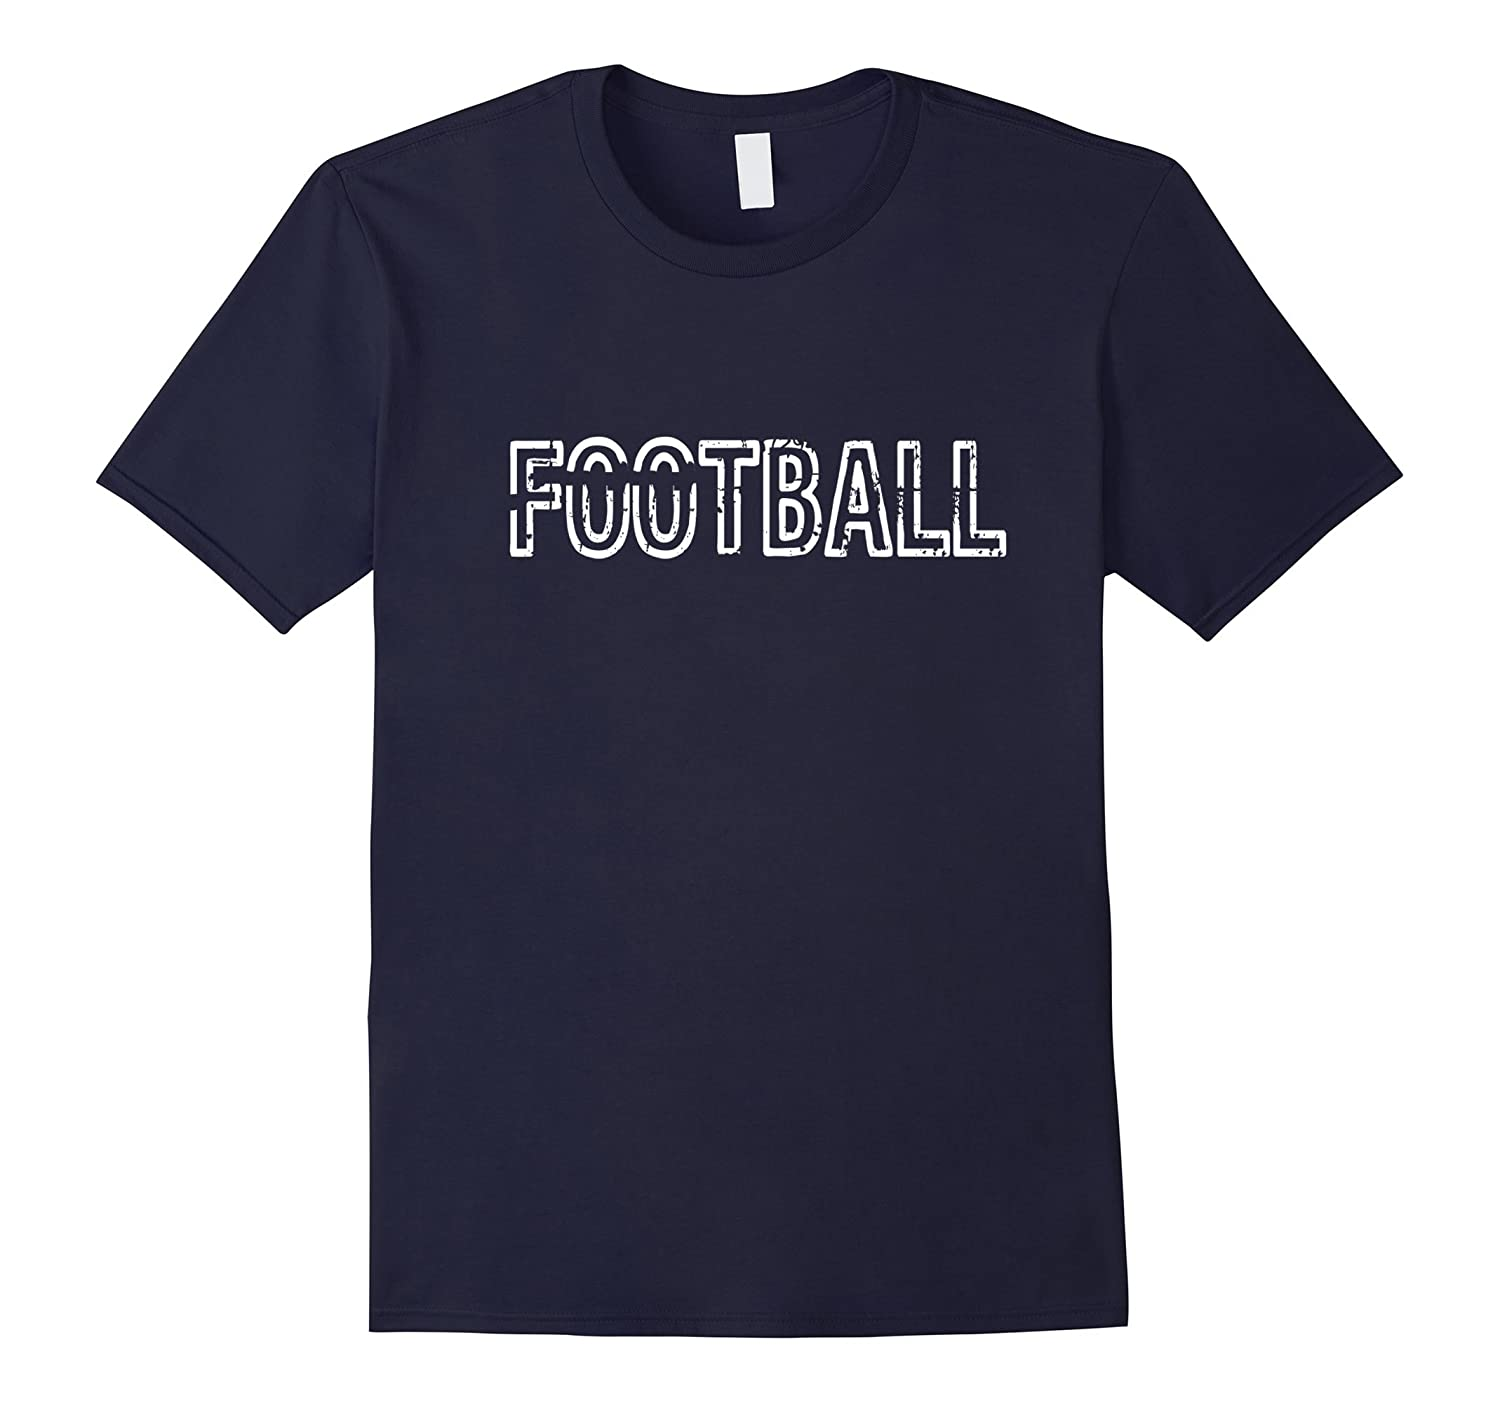 Football - Simple White Design 4-BN